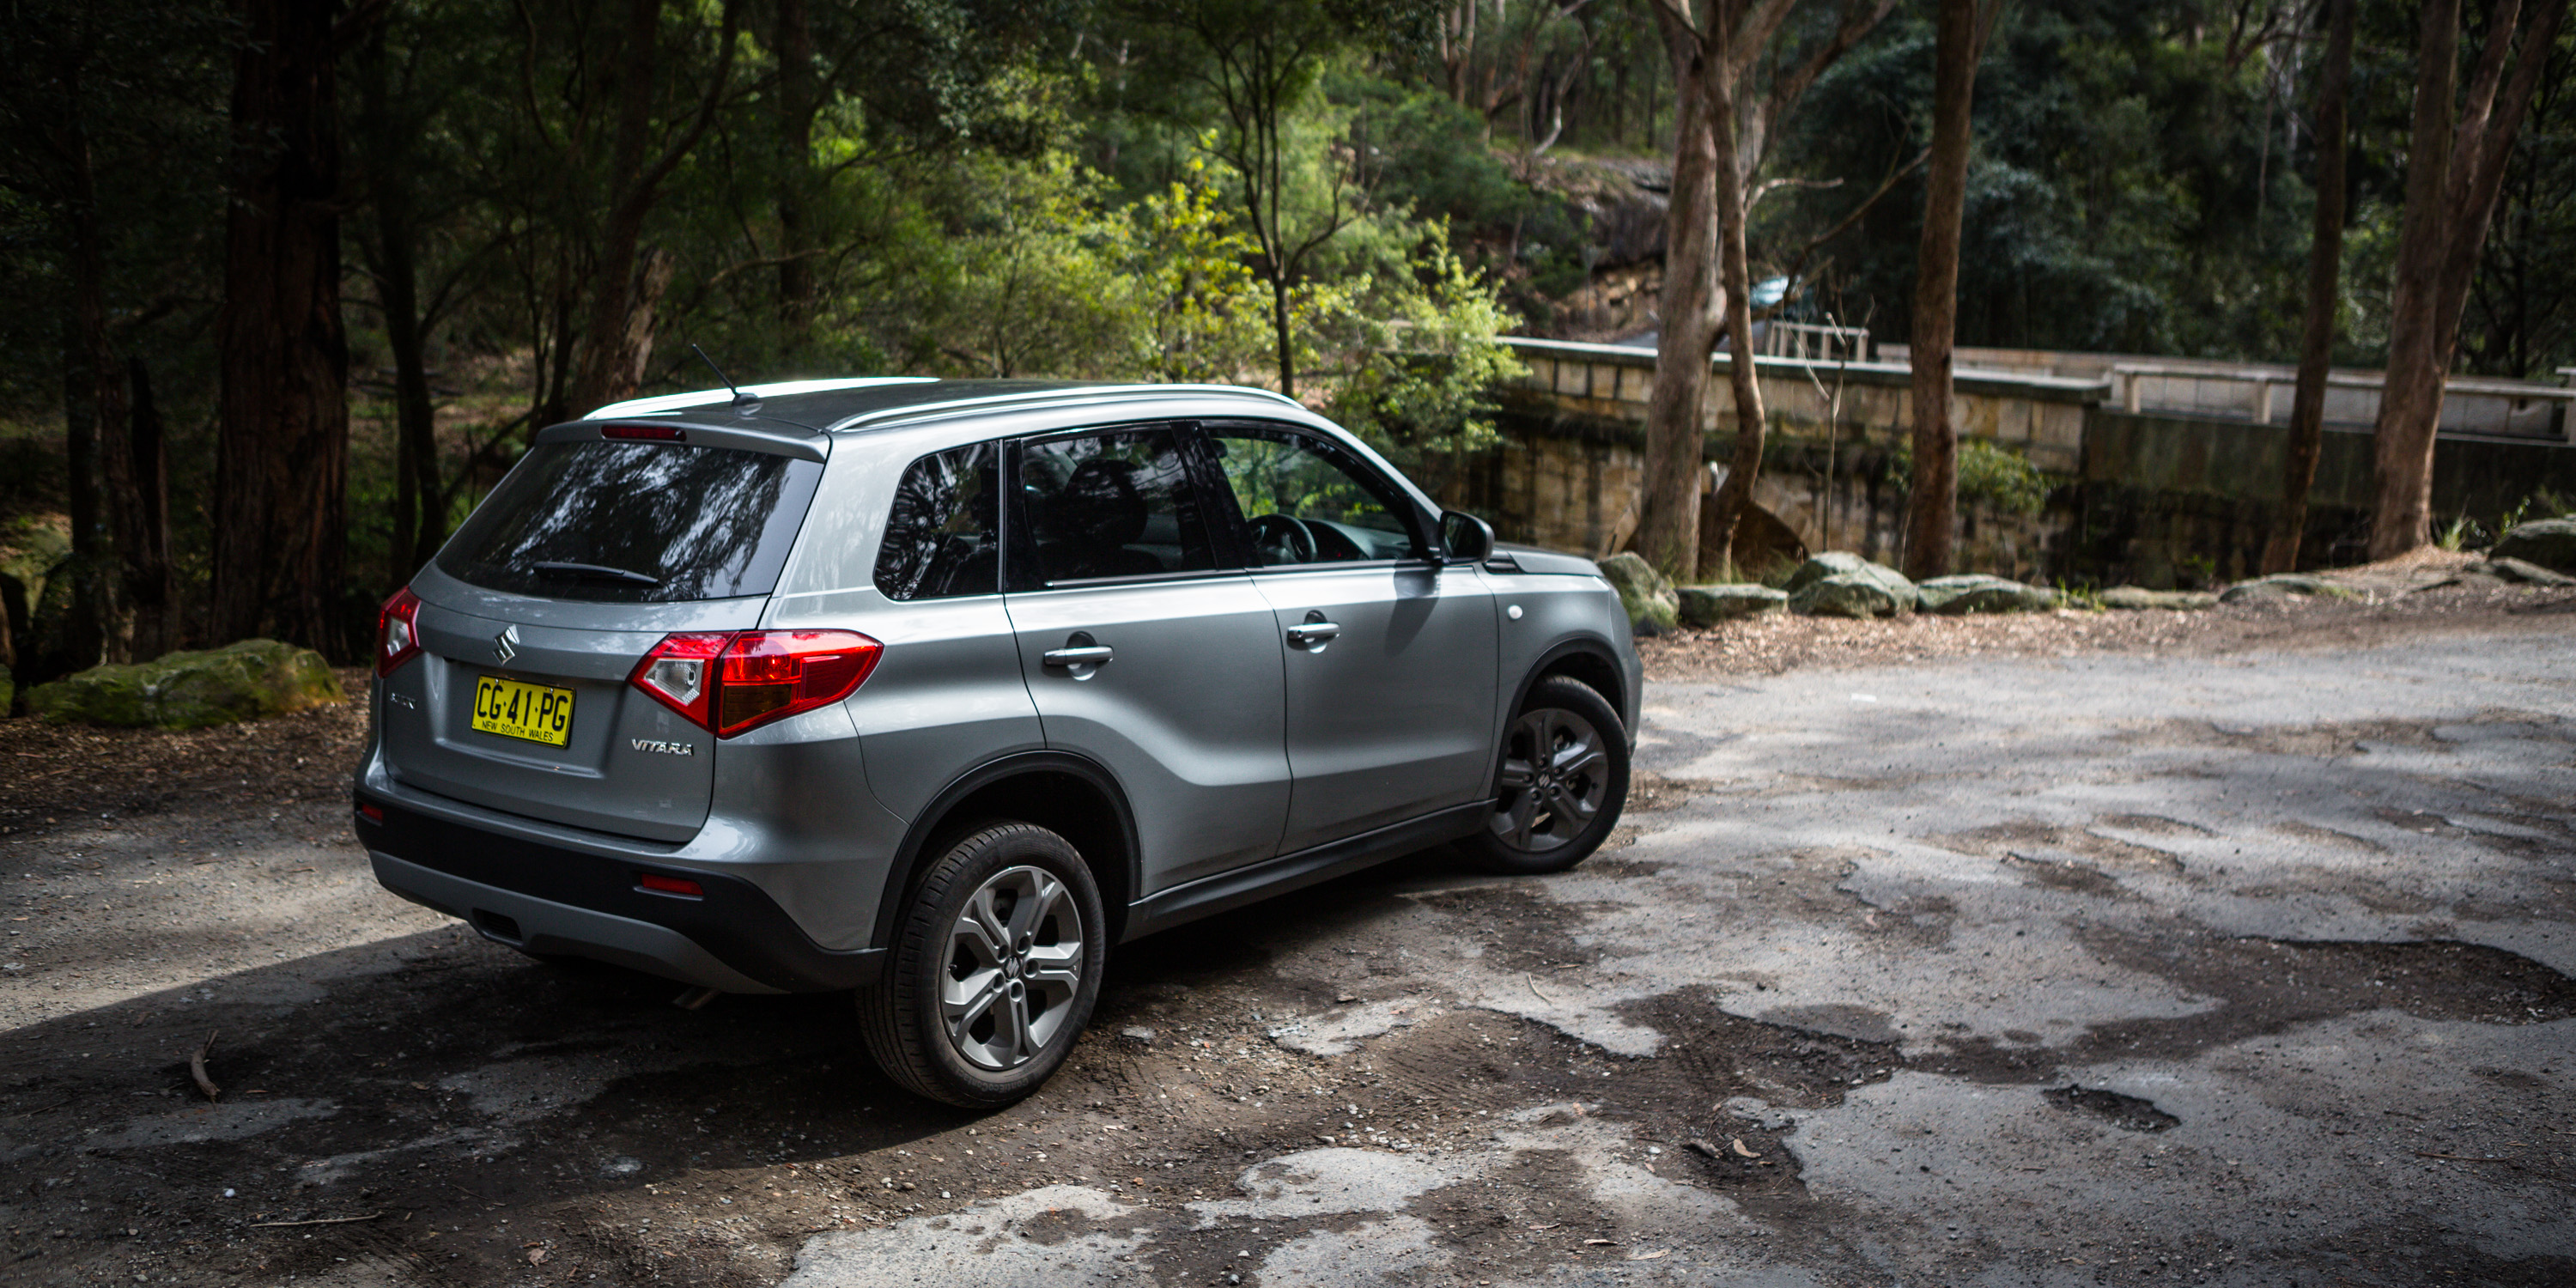 New 2016 Suzuki Vitara Range Review  Photos 1 Of 174